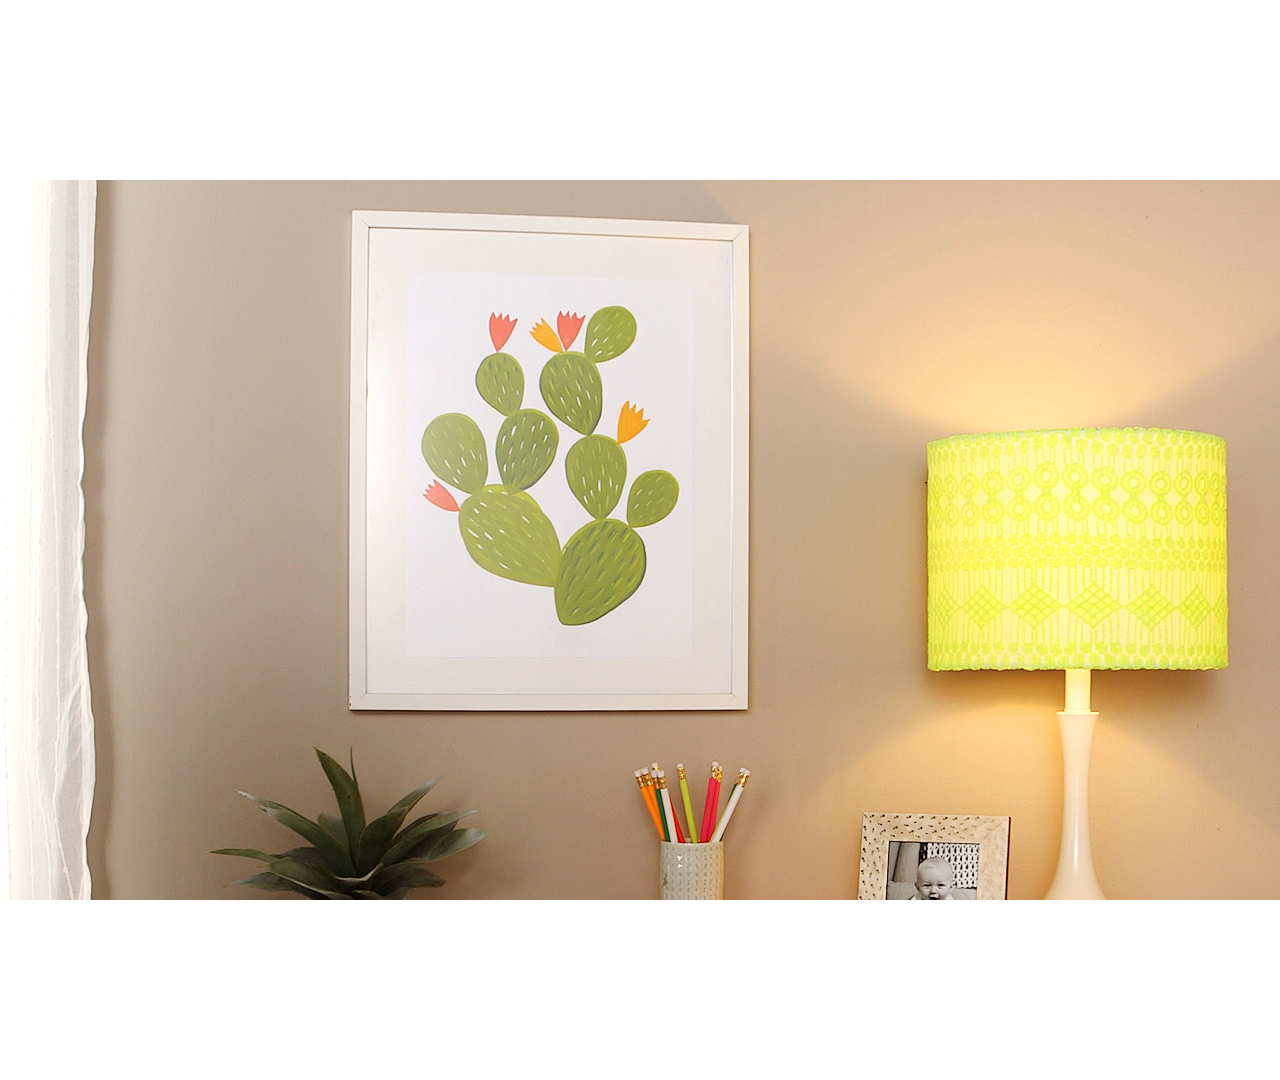 stamped cactus art in white frame on wall